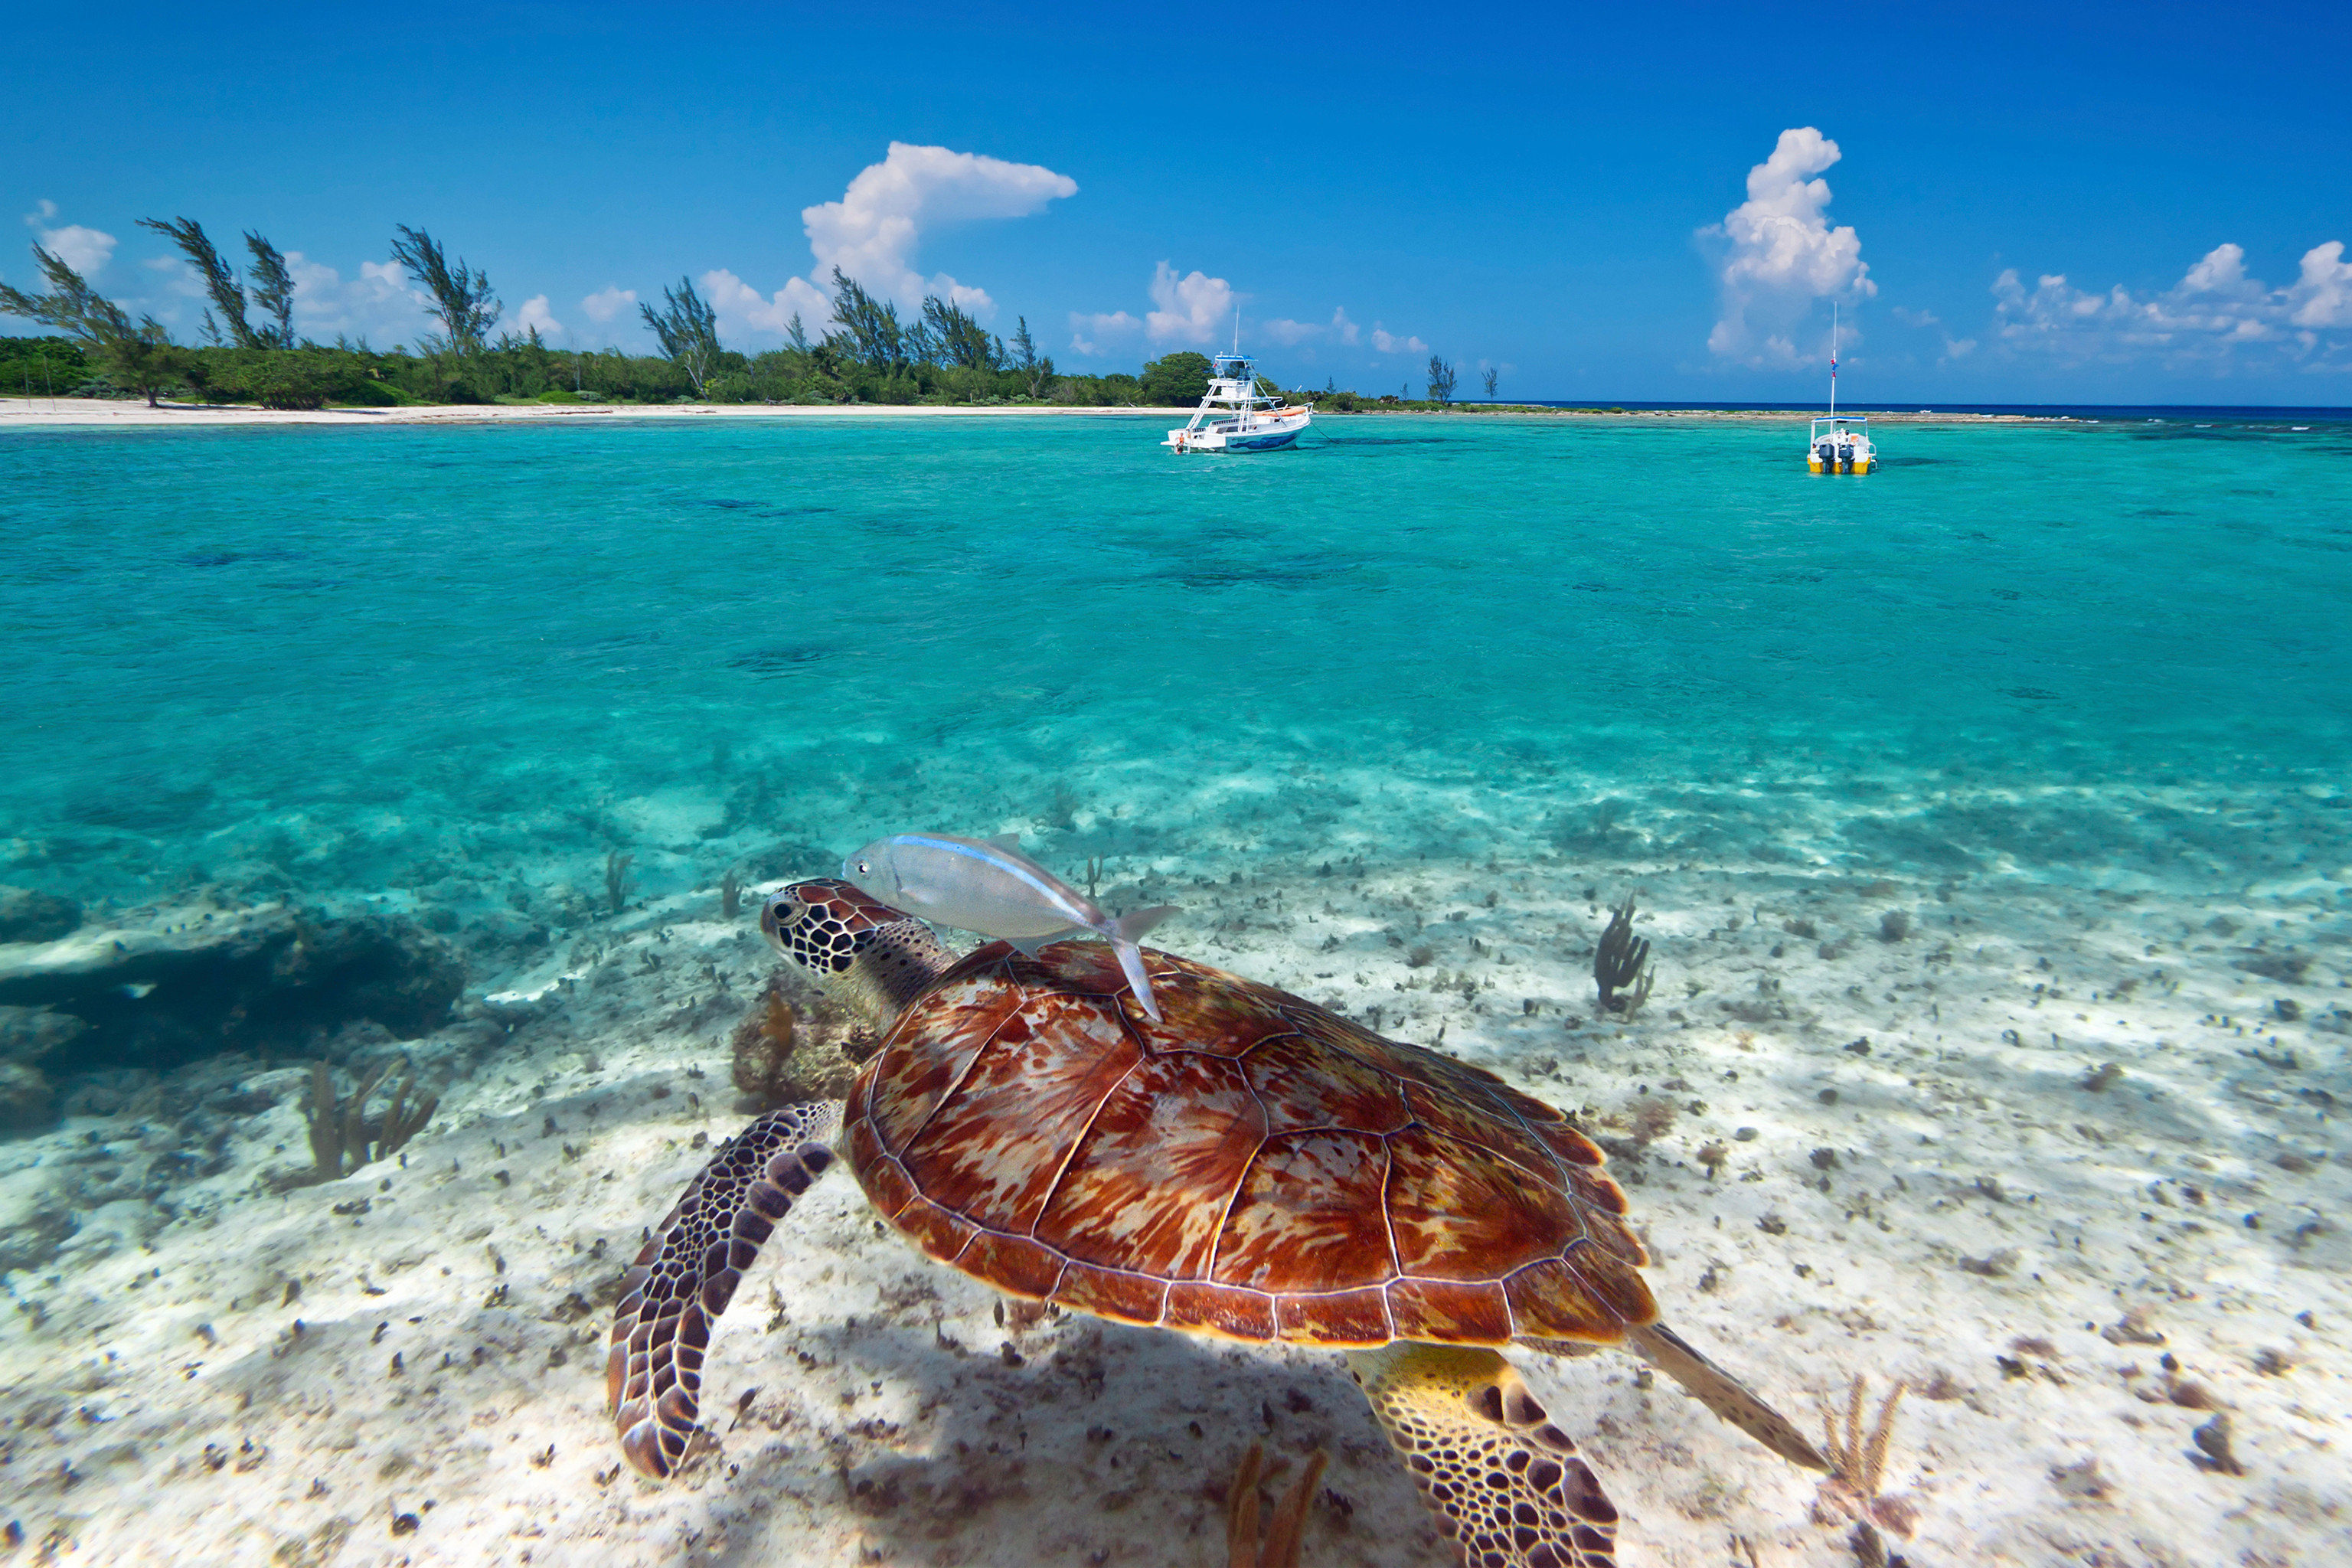 Beach Beachfront Family Ocean Play Trip Ideas Tropical sky water turtle sea turtle marine biology Sea biology reptile loggerhead underwater tropics